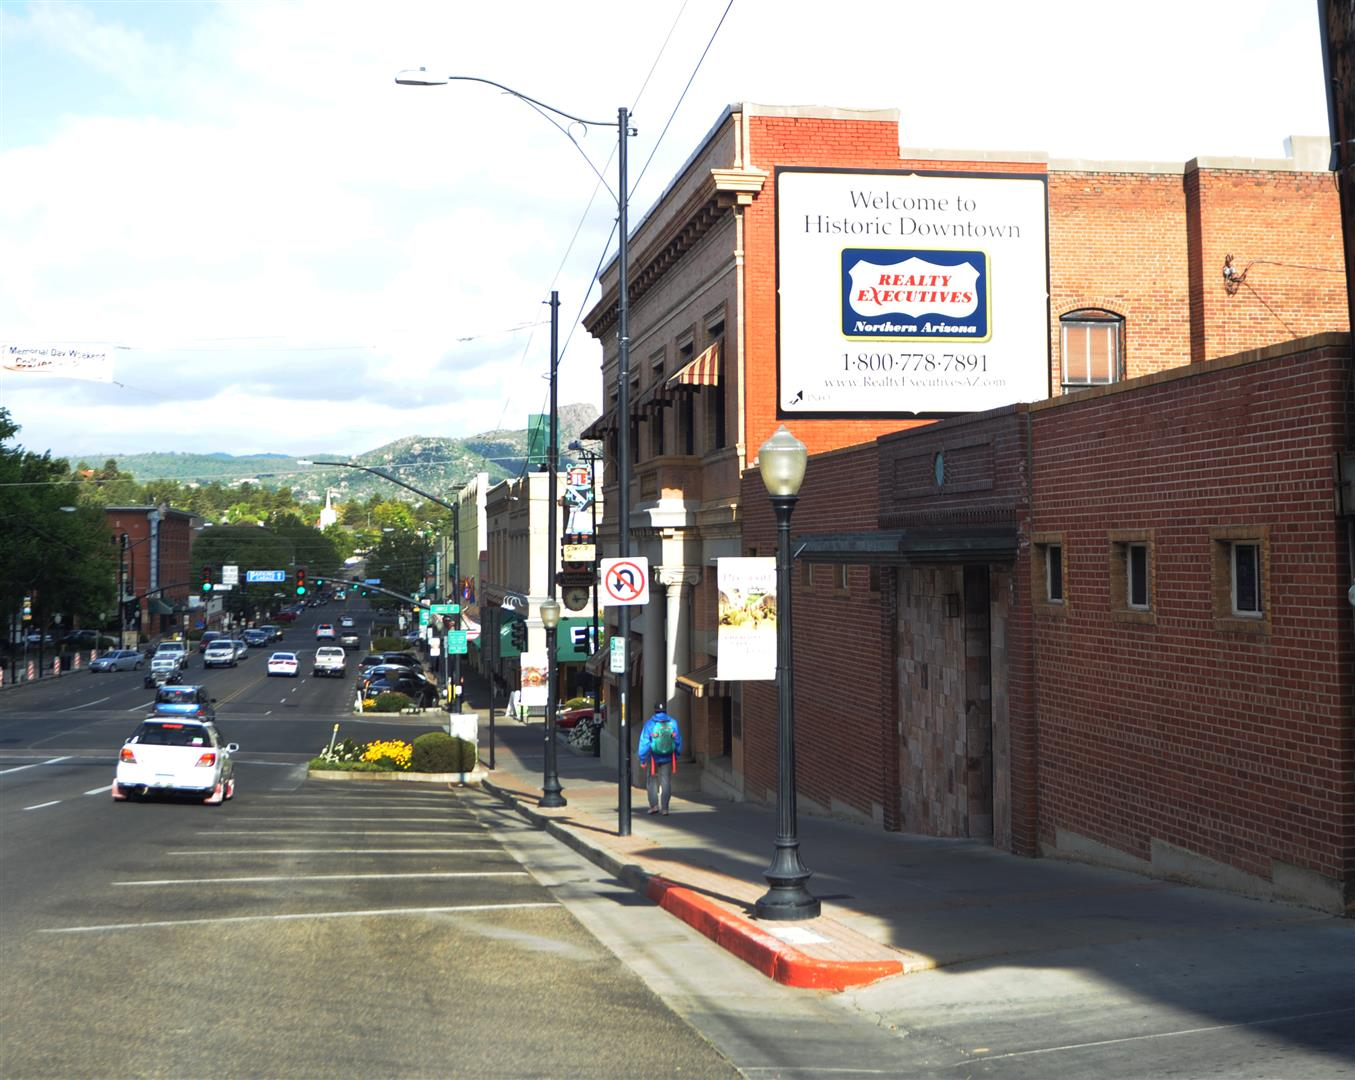 Realty Executives Northern Arizona - Downtown Prescott